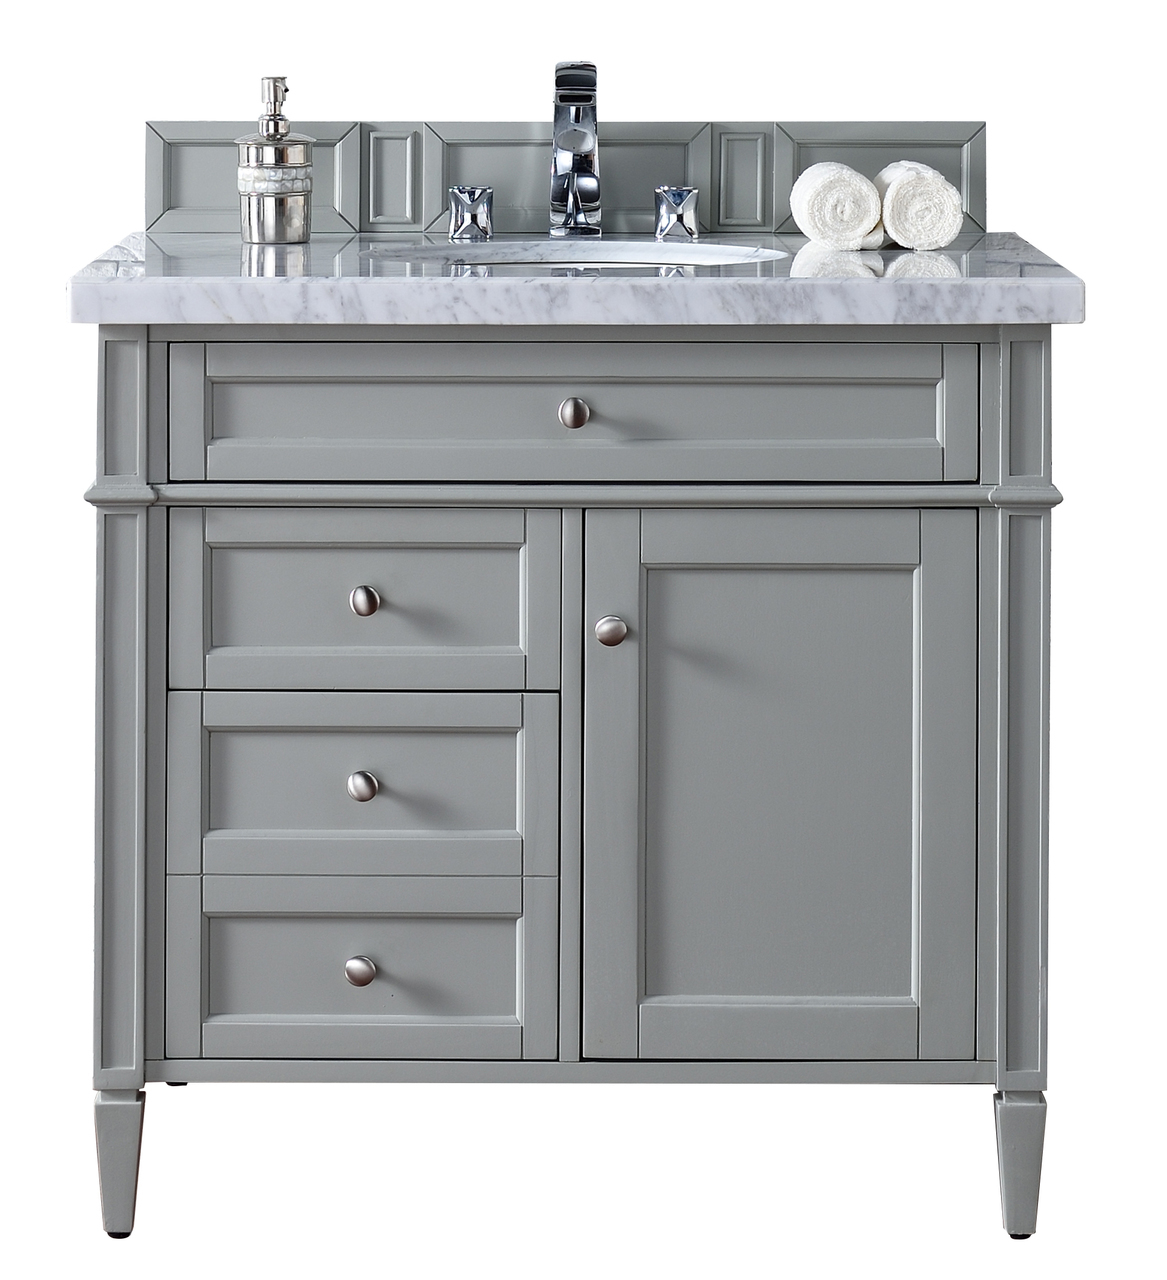 Bathroom Vanities No Top 28 Images Contemporary 48 Inch Single Bathroom Vanity White Finish